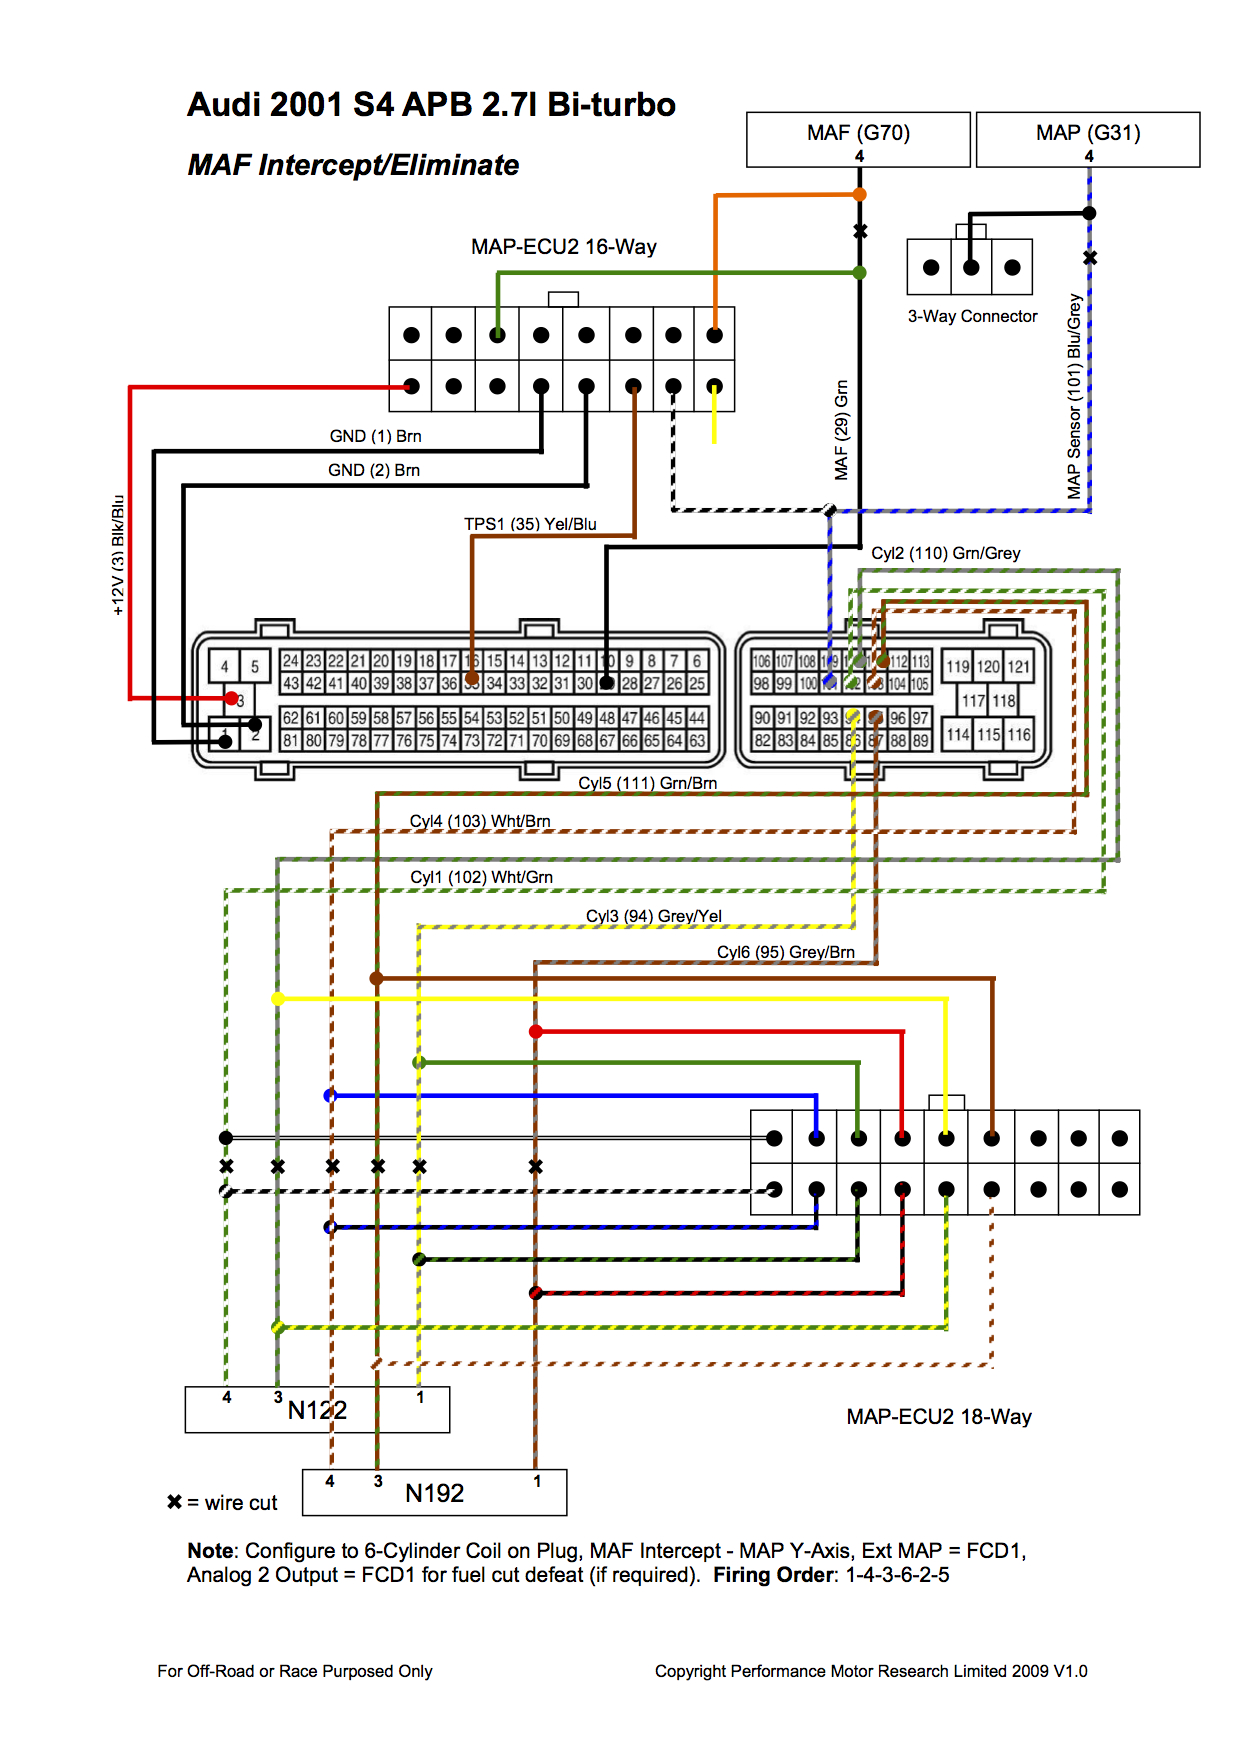 Mapecu Wiring Diagrams Audi BMW Ford Honda Lexus Nissan Toyota. Chevrolet. 2002 Chevy Impala Ho Parts Diagram At Scoala.co